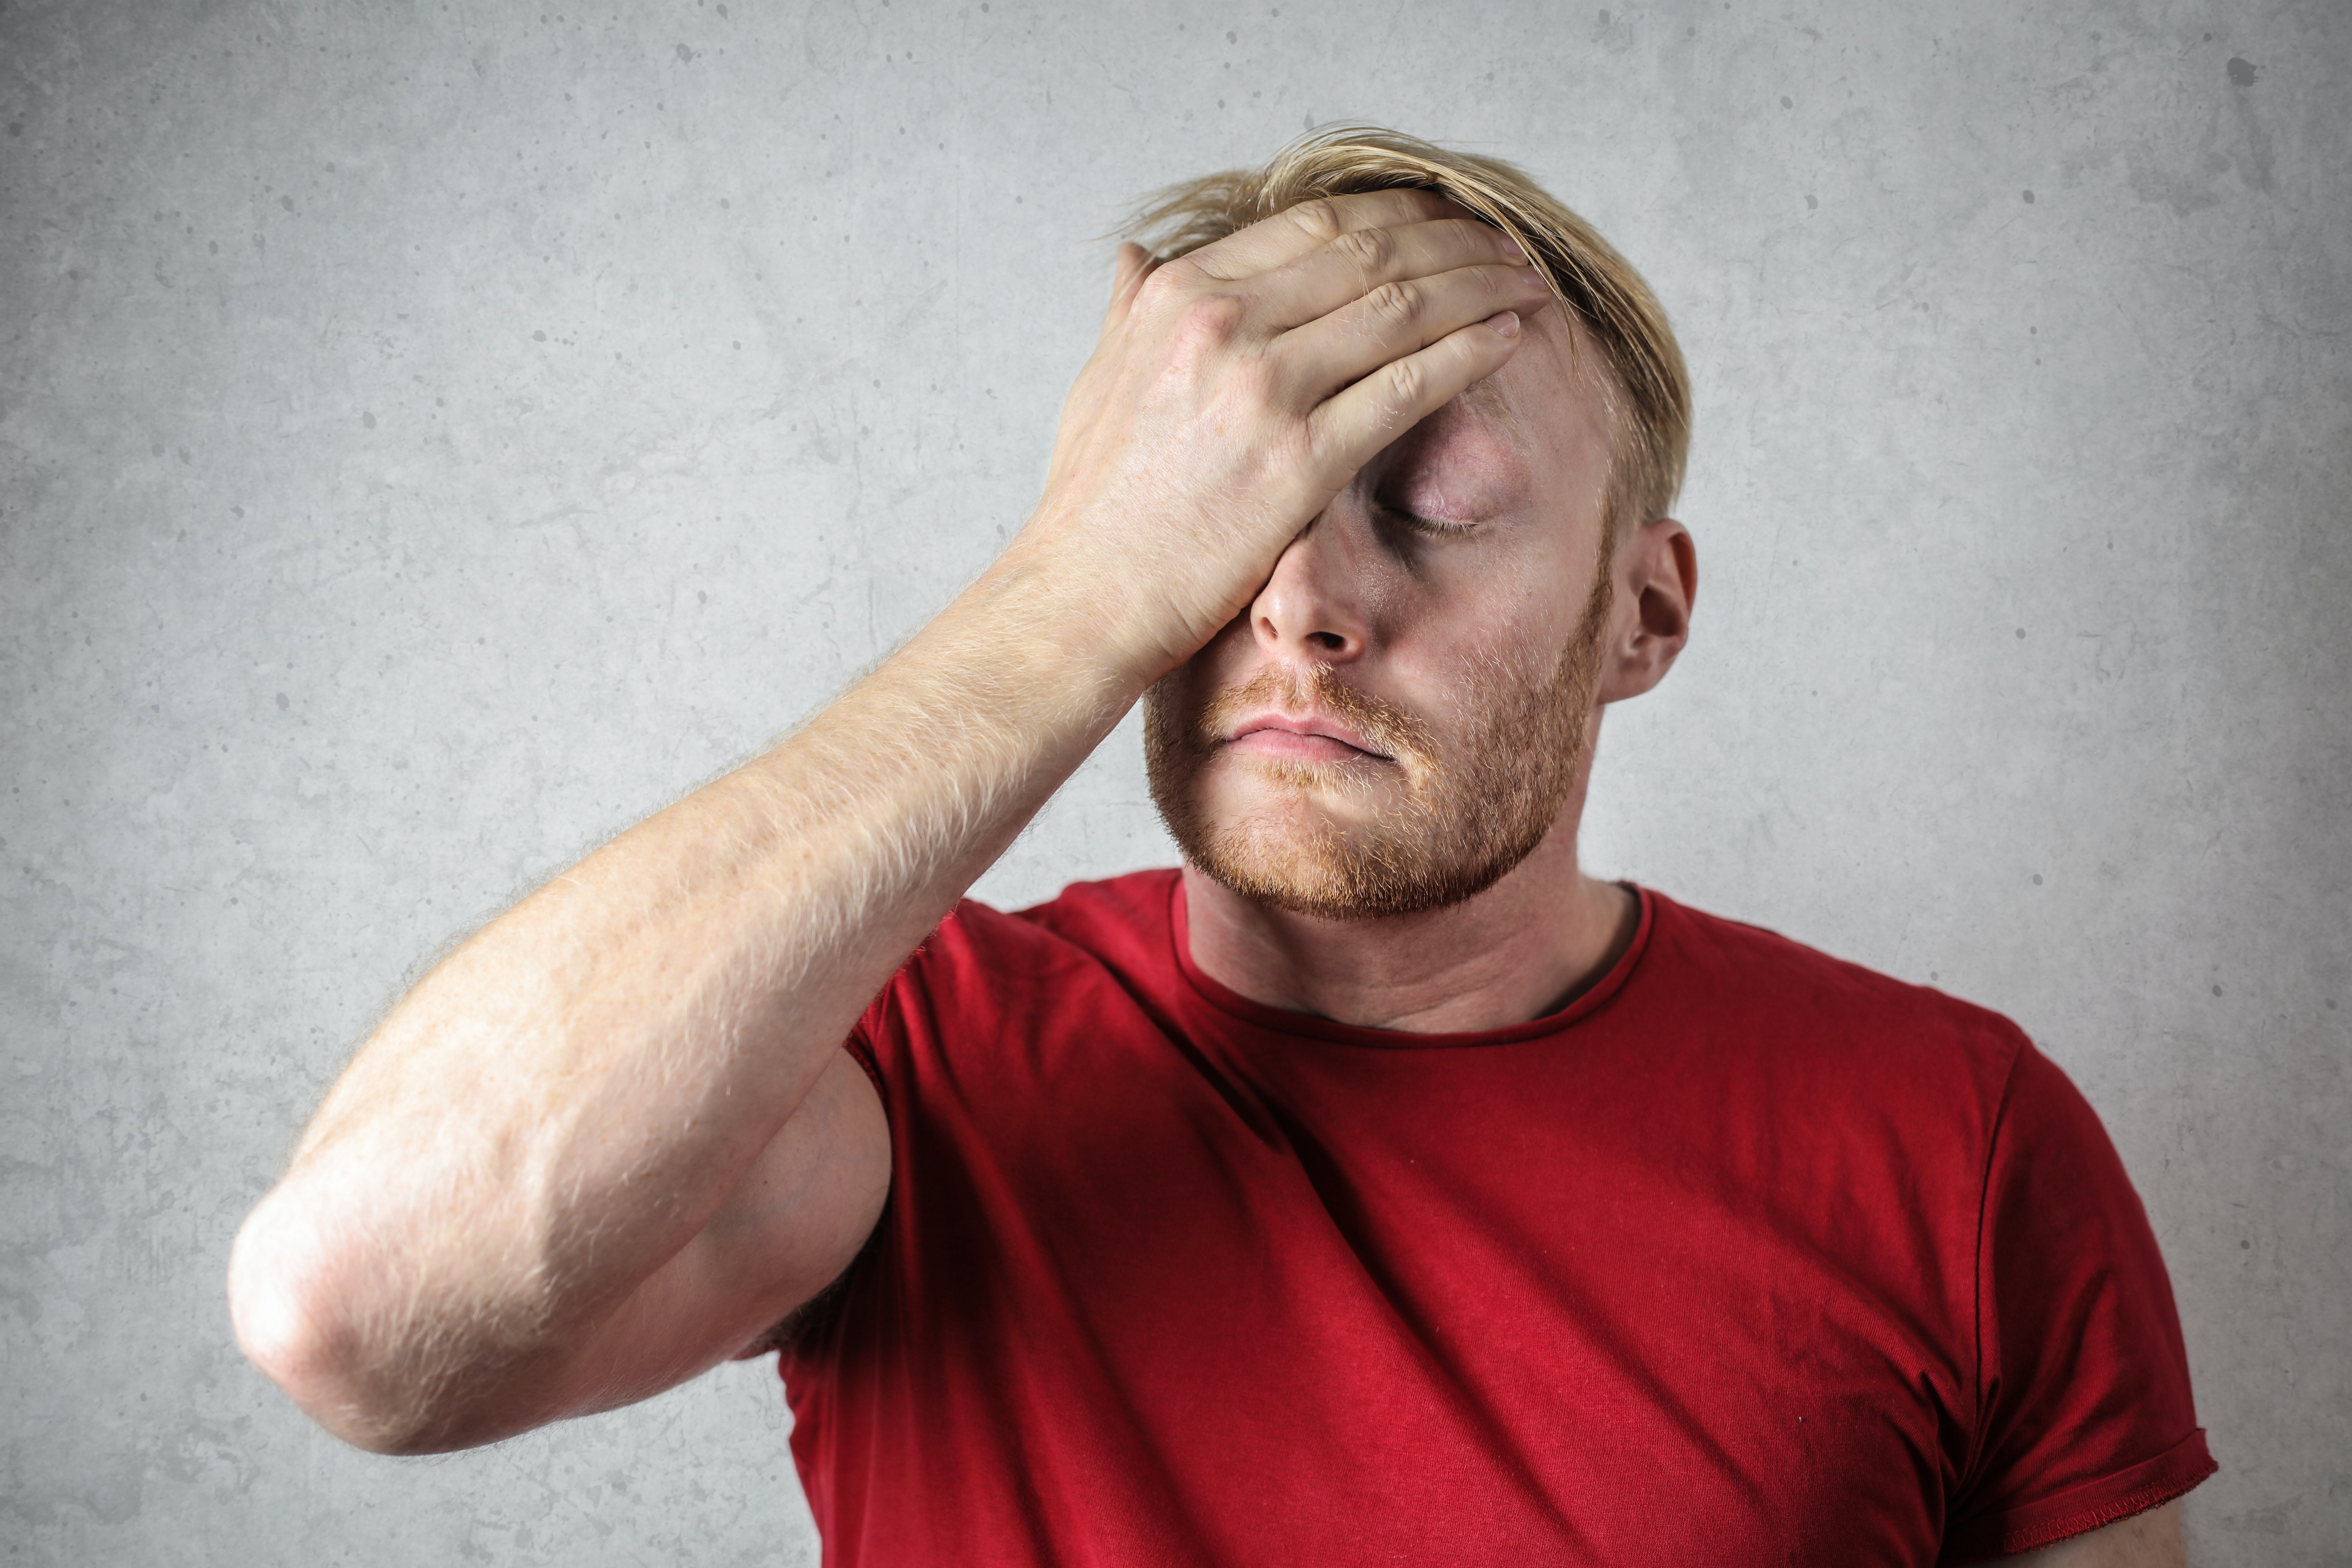 a-man-in-red-shirt-covering-his-face-3760043